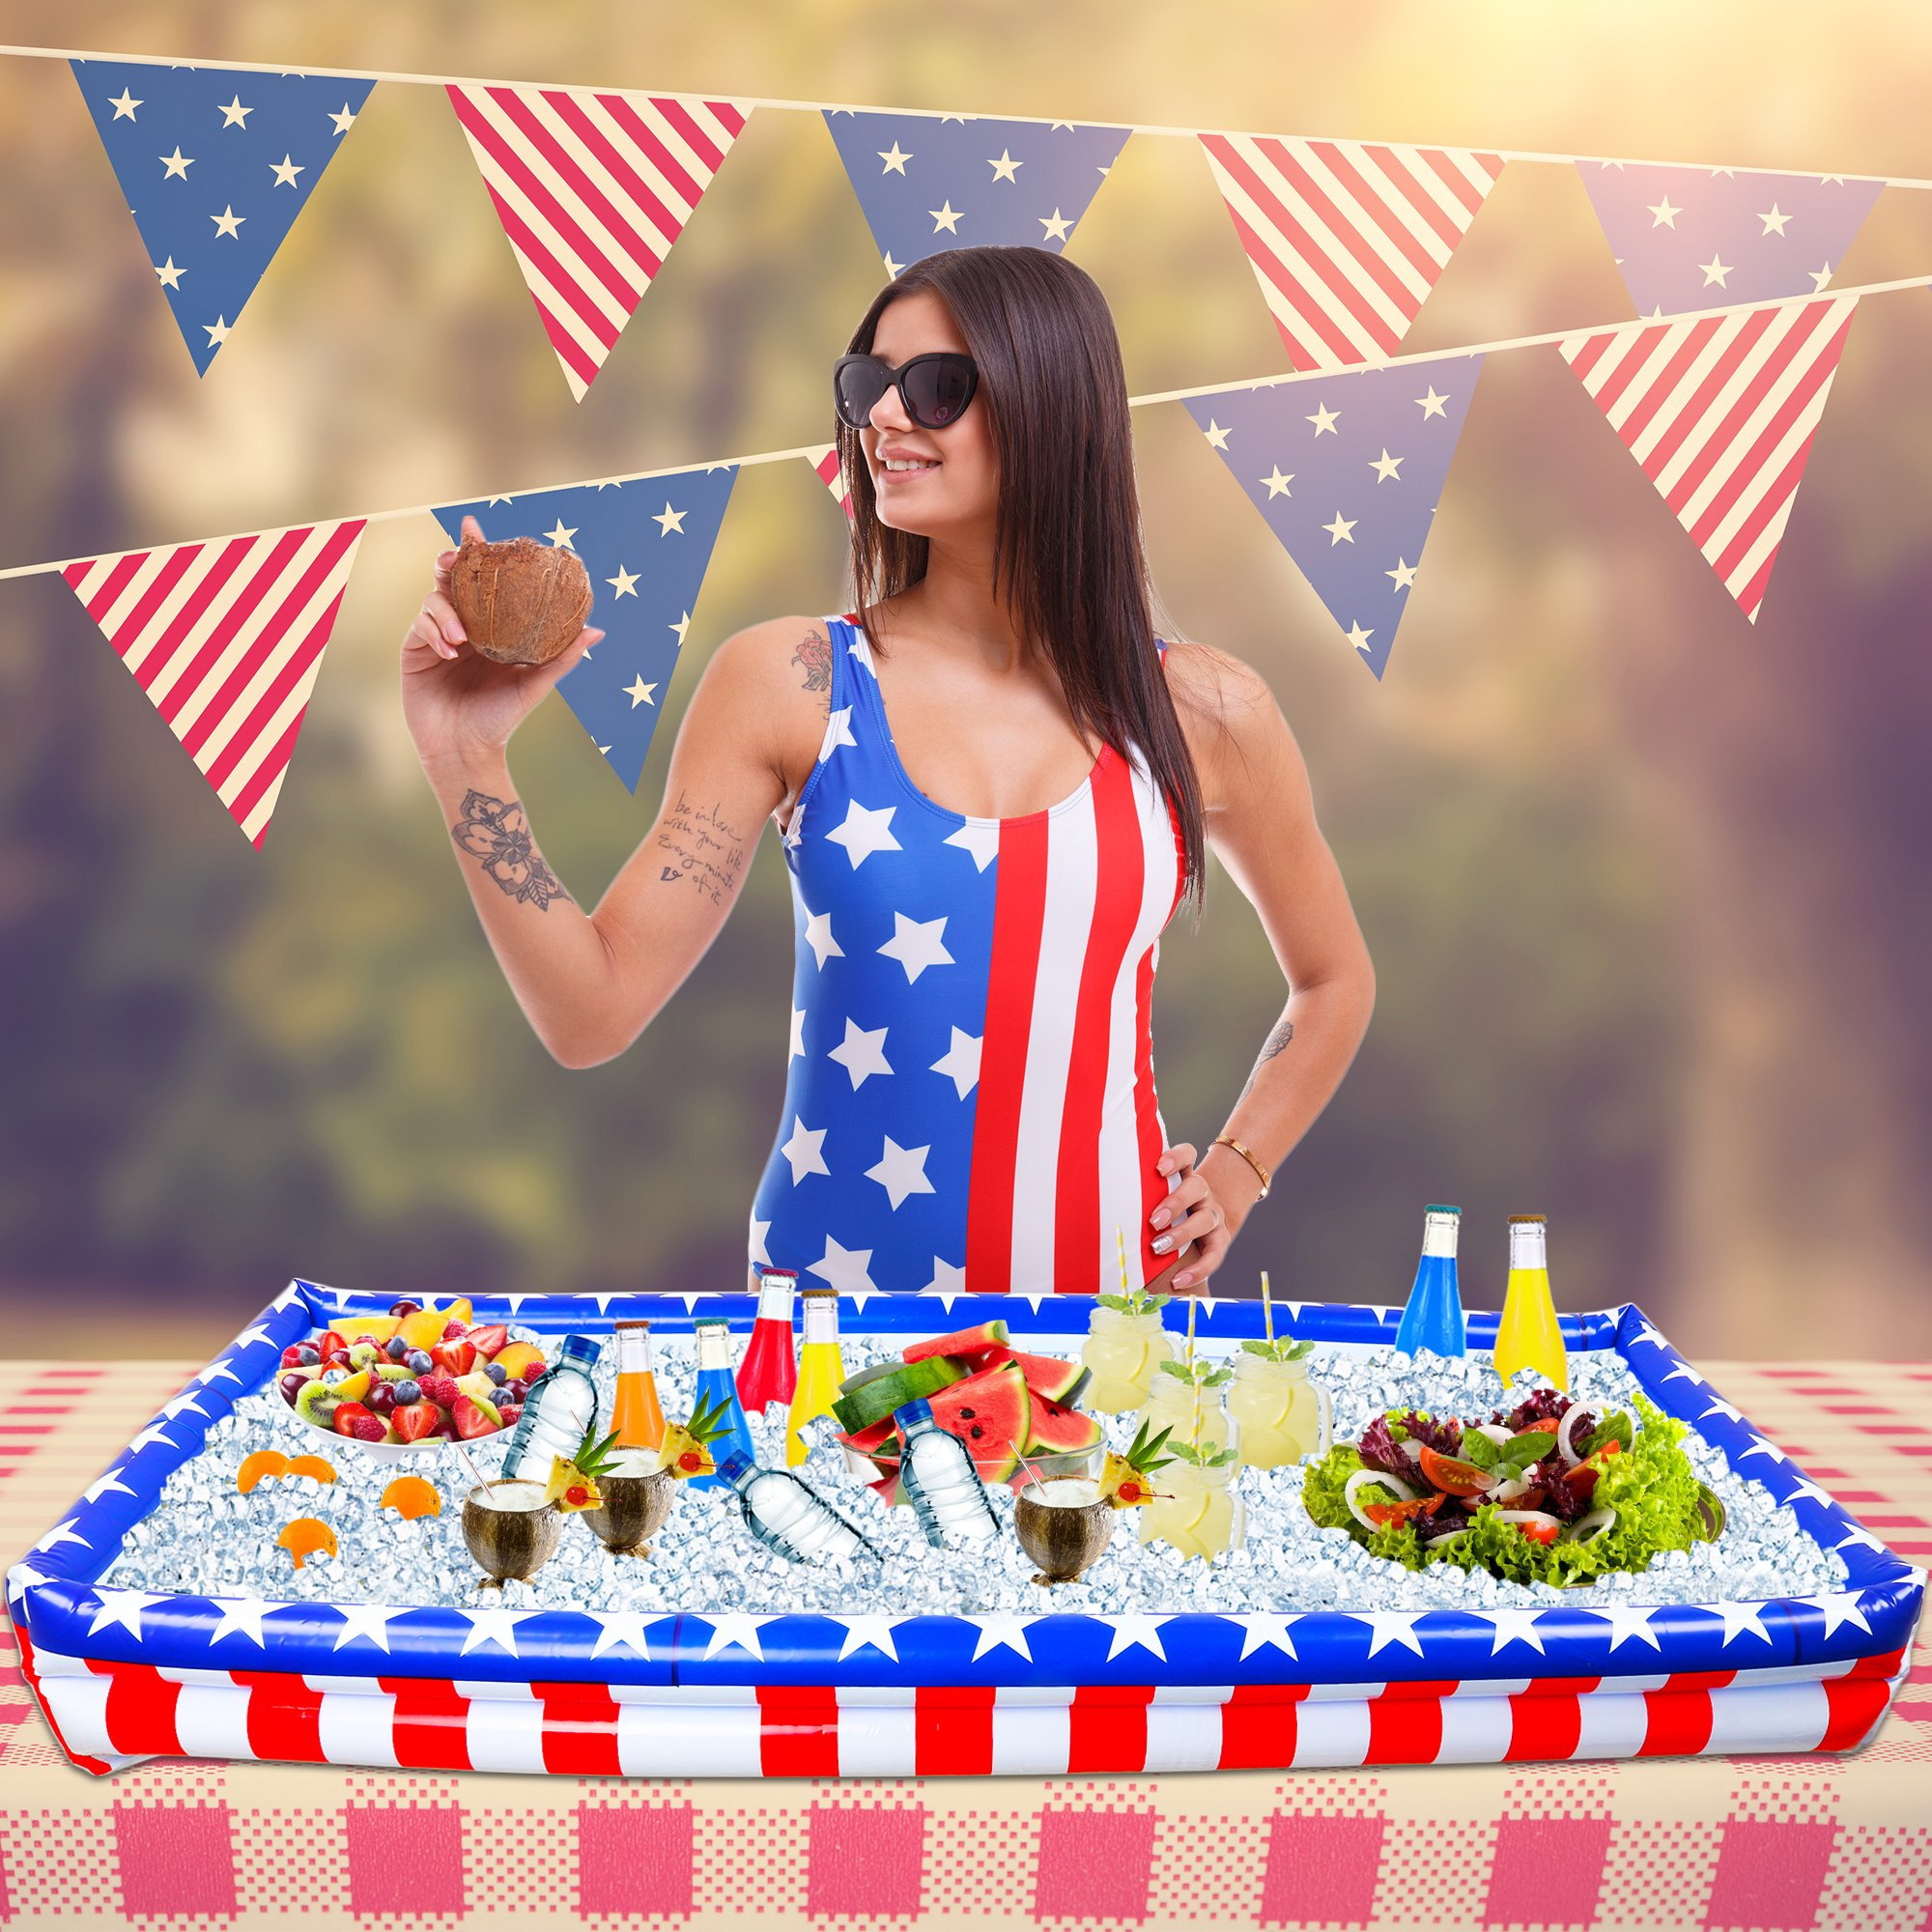 Outdoor Inflatable Buffet Cooler Server - Patriotic Red White and Blue Blow Up Cooling Tub for Serving Buffet Style Picnic - Pack of 2 by Big Mo's Toys (Image #4)